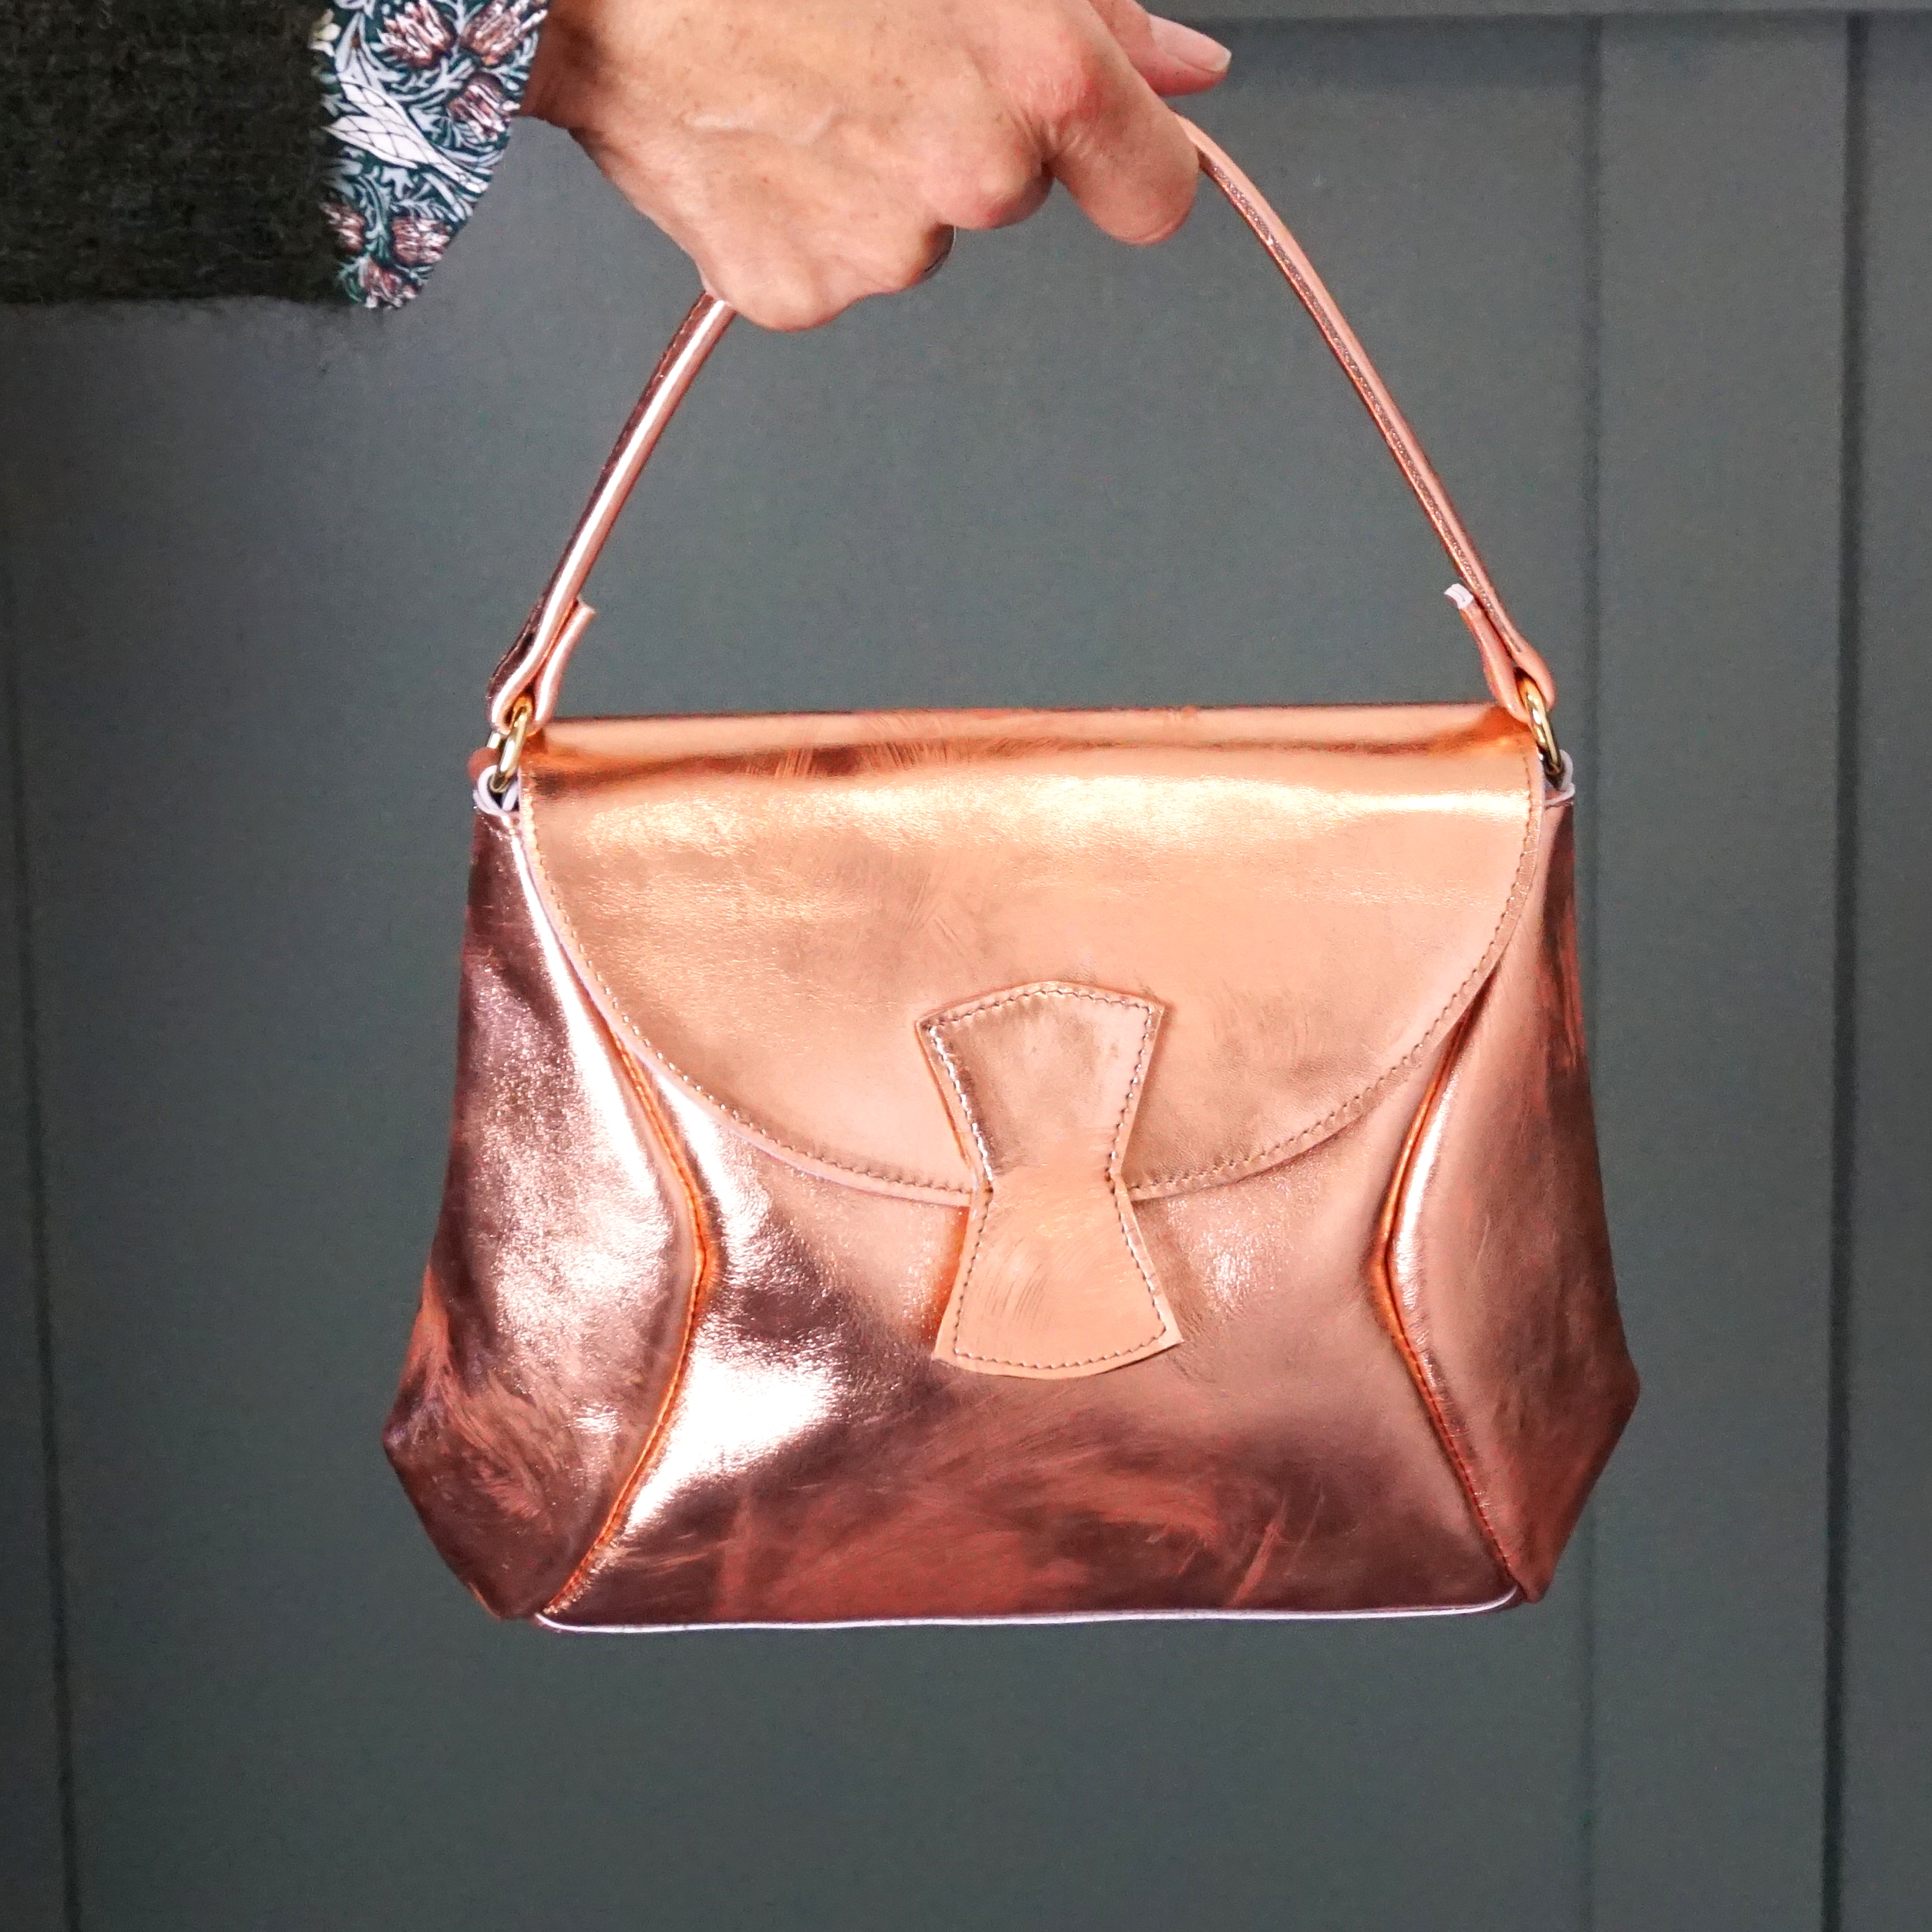 copper leather handbag chic handmade by studio van leeuwen